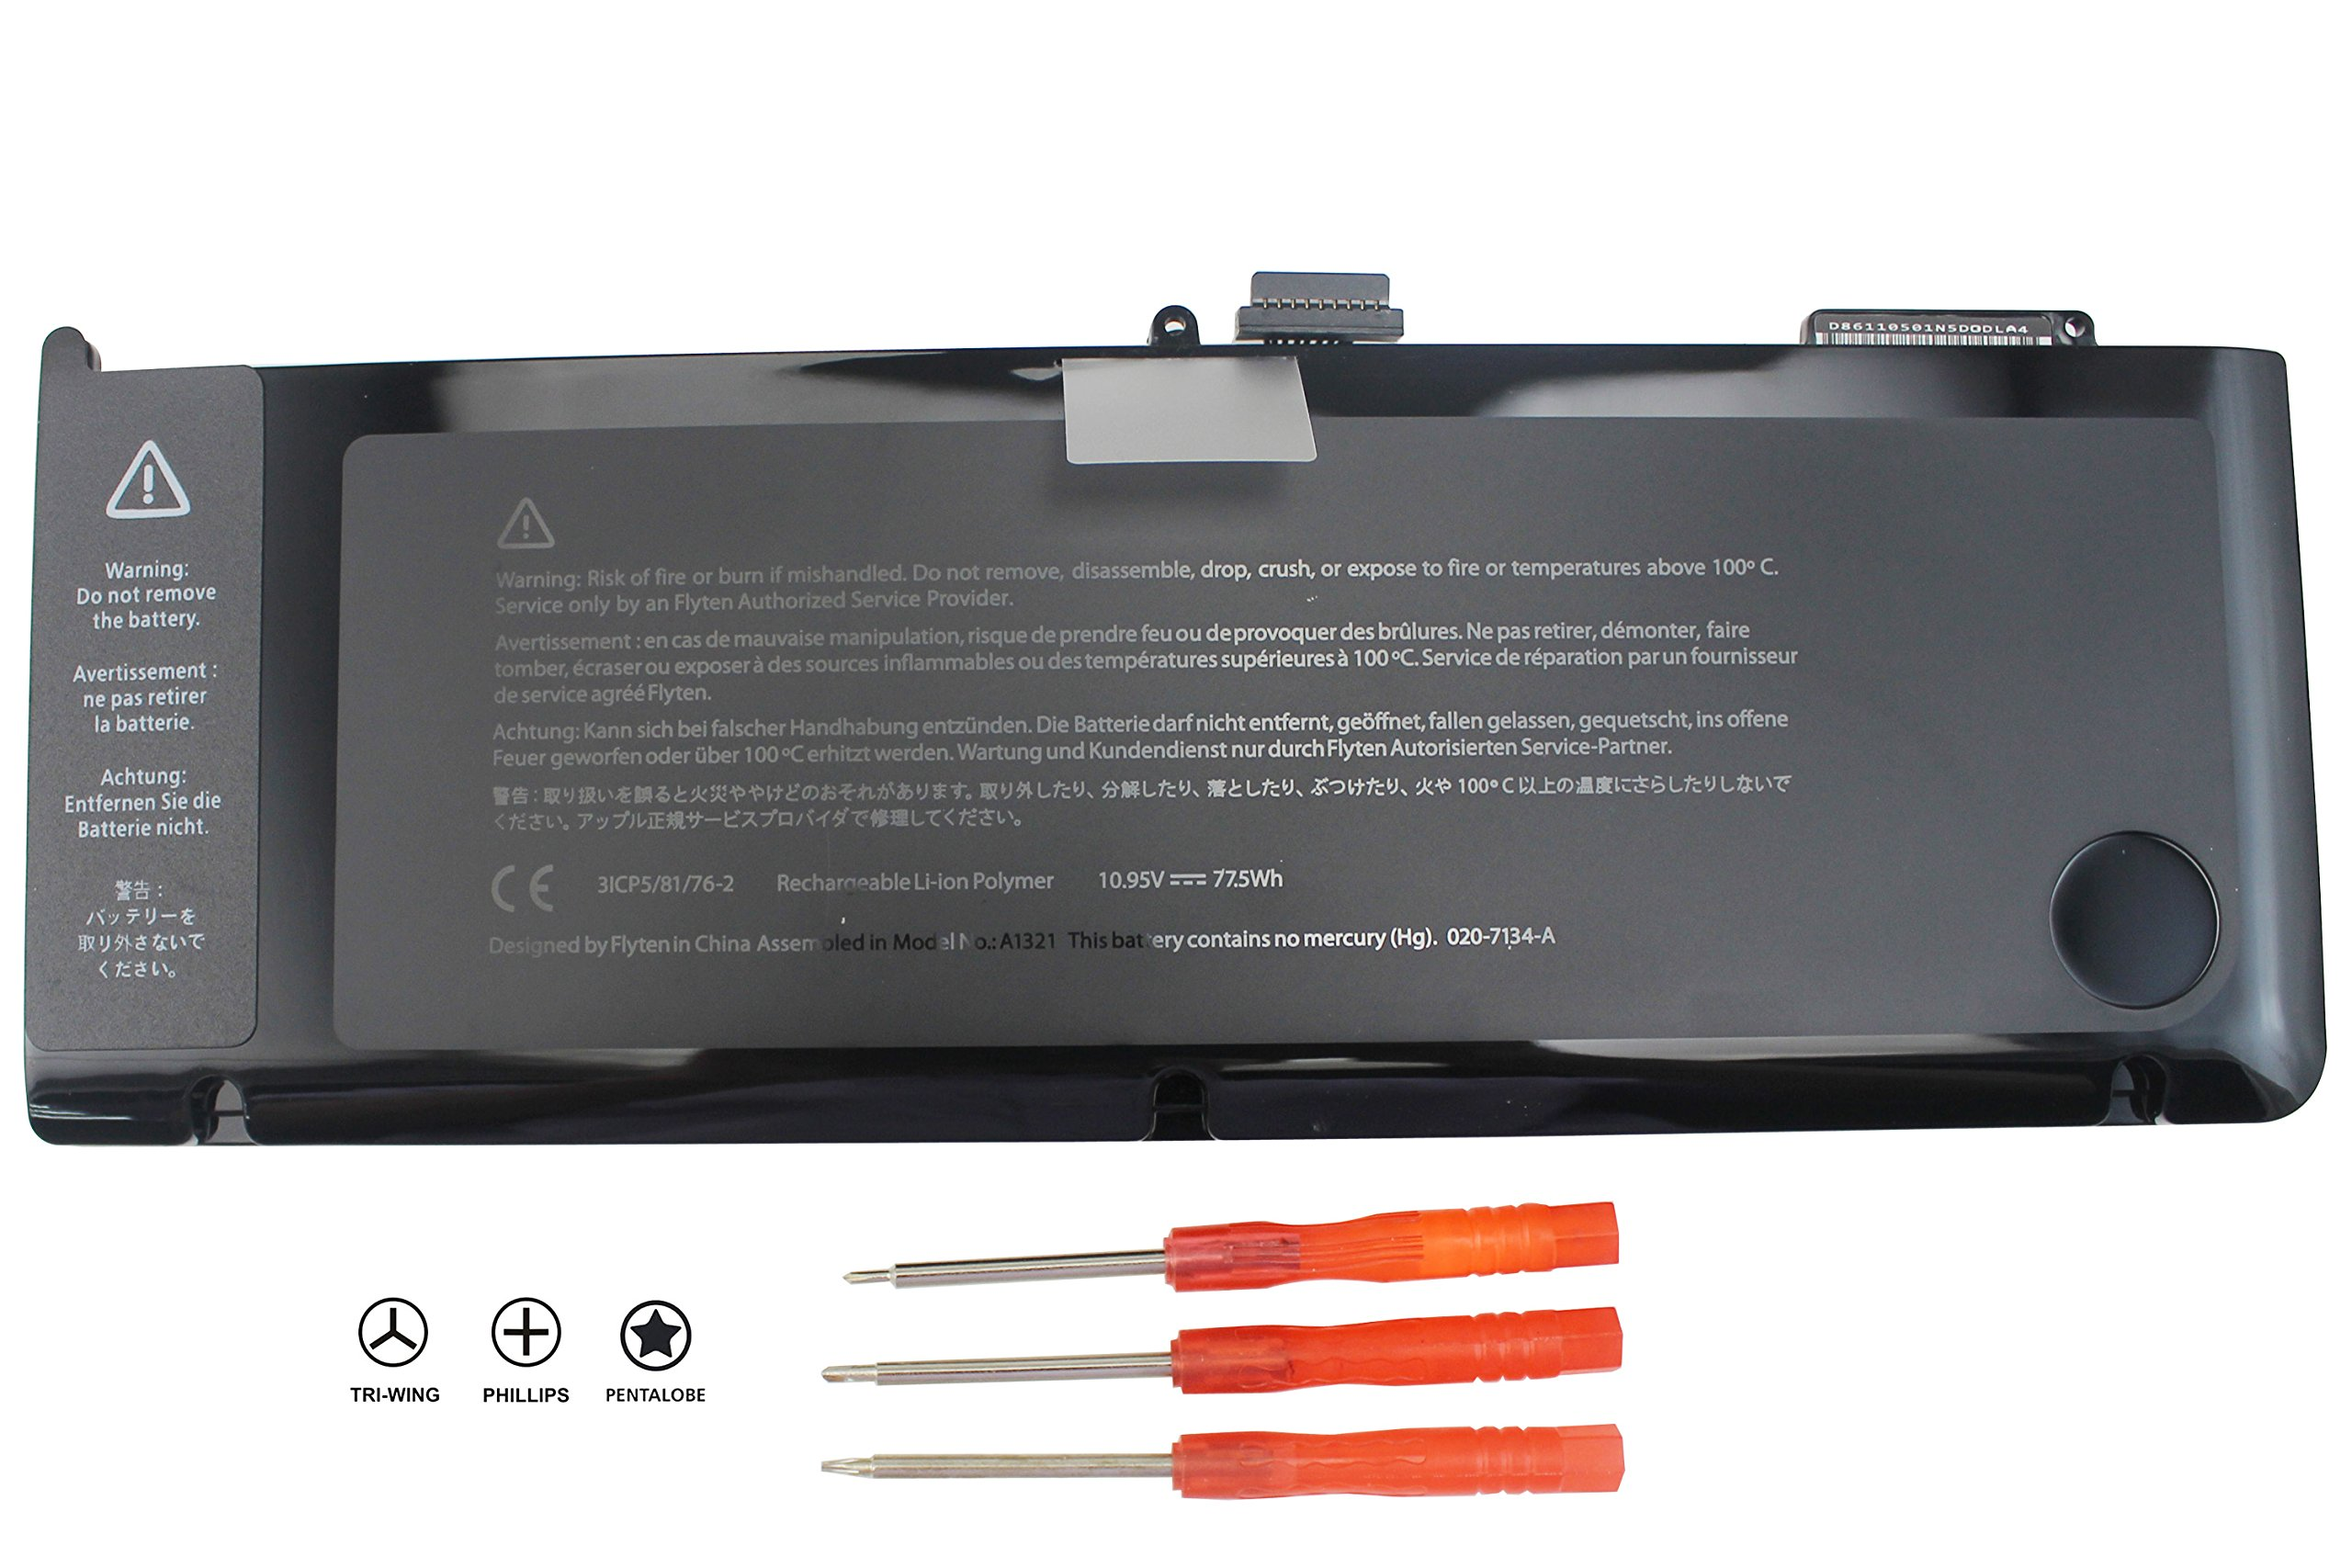 BATURU 77.5WH A1321 Laptop Battery for Apple Macbook Pro 15'' A1286 (Mid 2009, Early/Late 2010) MB985LL/A MB986LL/A MC371LL/A MC372LL/A MC118LL/A 020-6766-b 661-5476 661-5211 - 18 Months Warranty